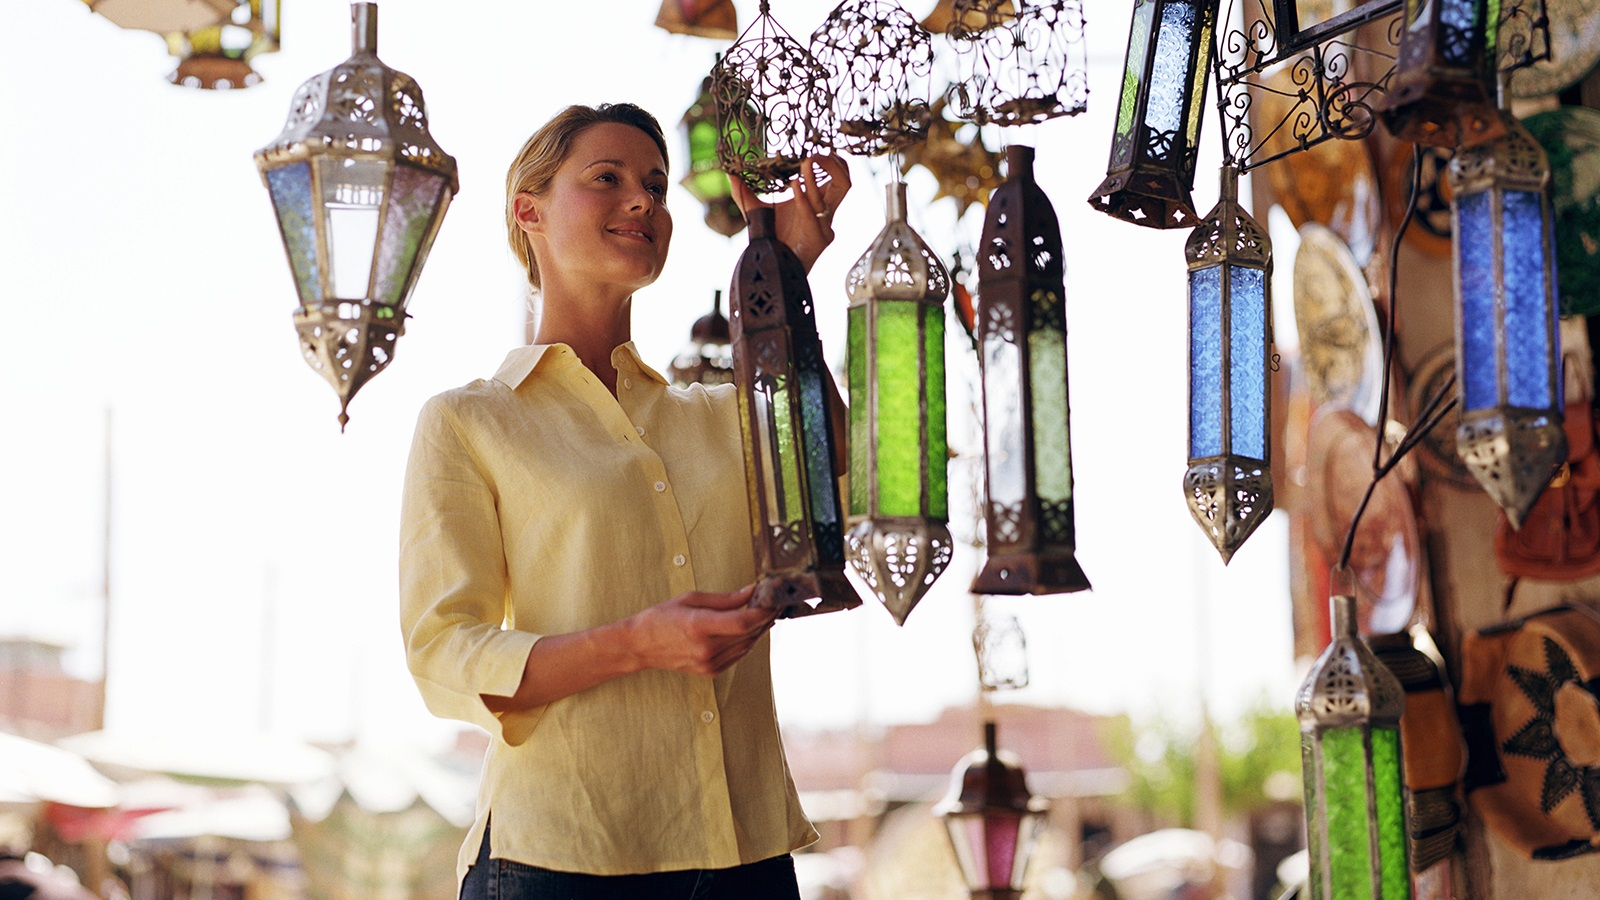 Young woman admiring lanterns hanging in front of a store.